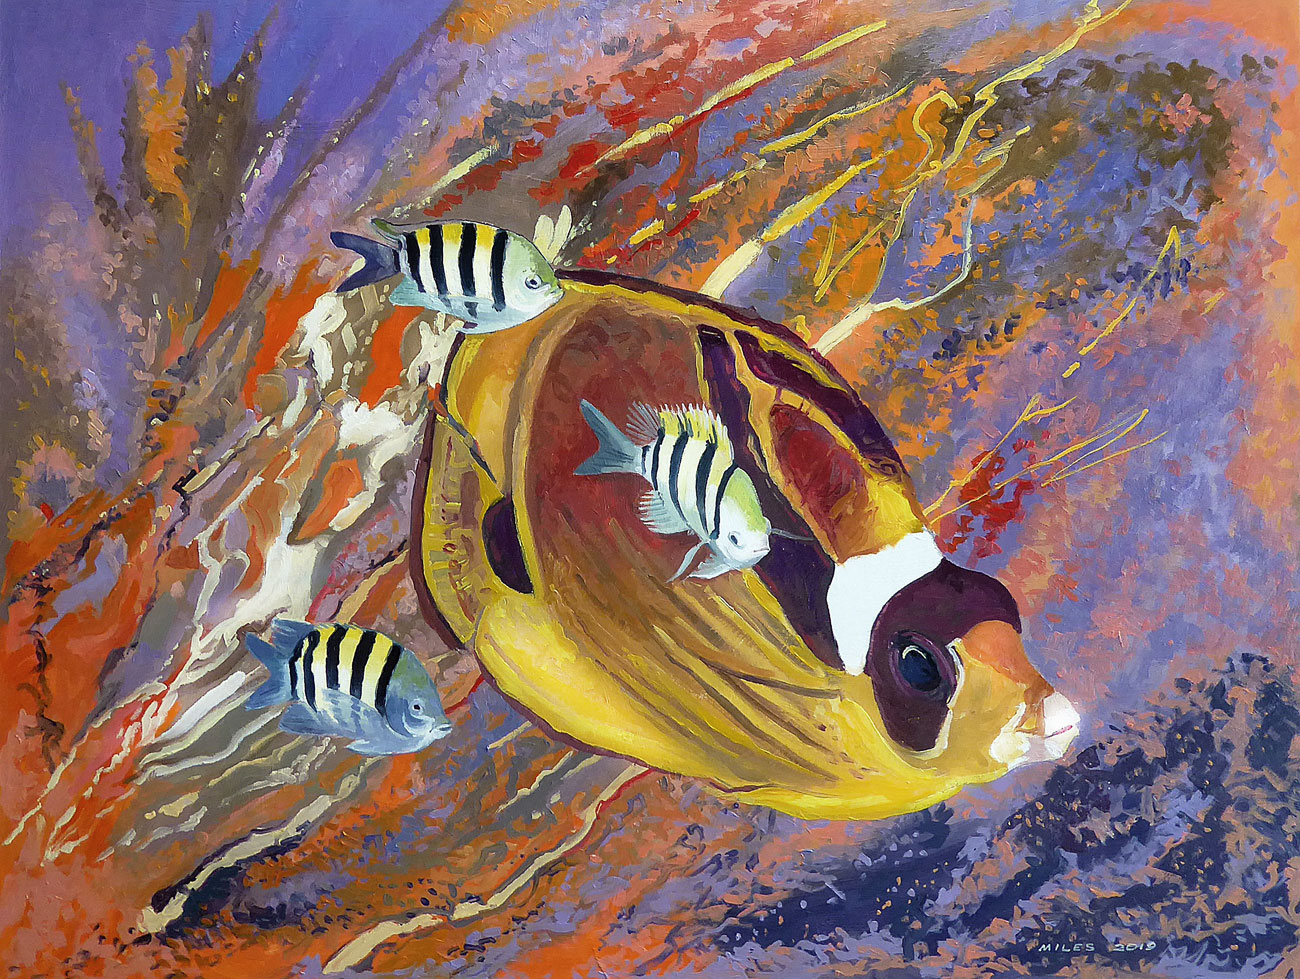 underwater-painting-gerry-miles-racoon-butterfly-fish-with-sergeant-majors.jpg